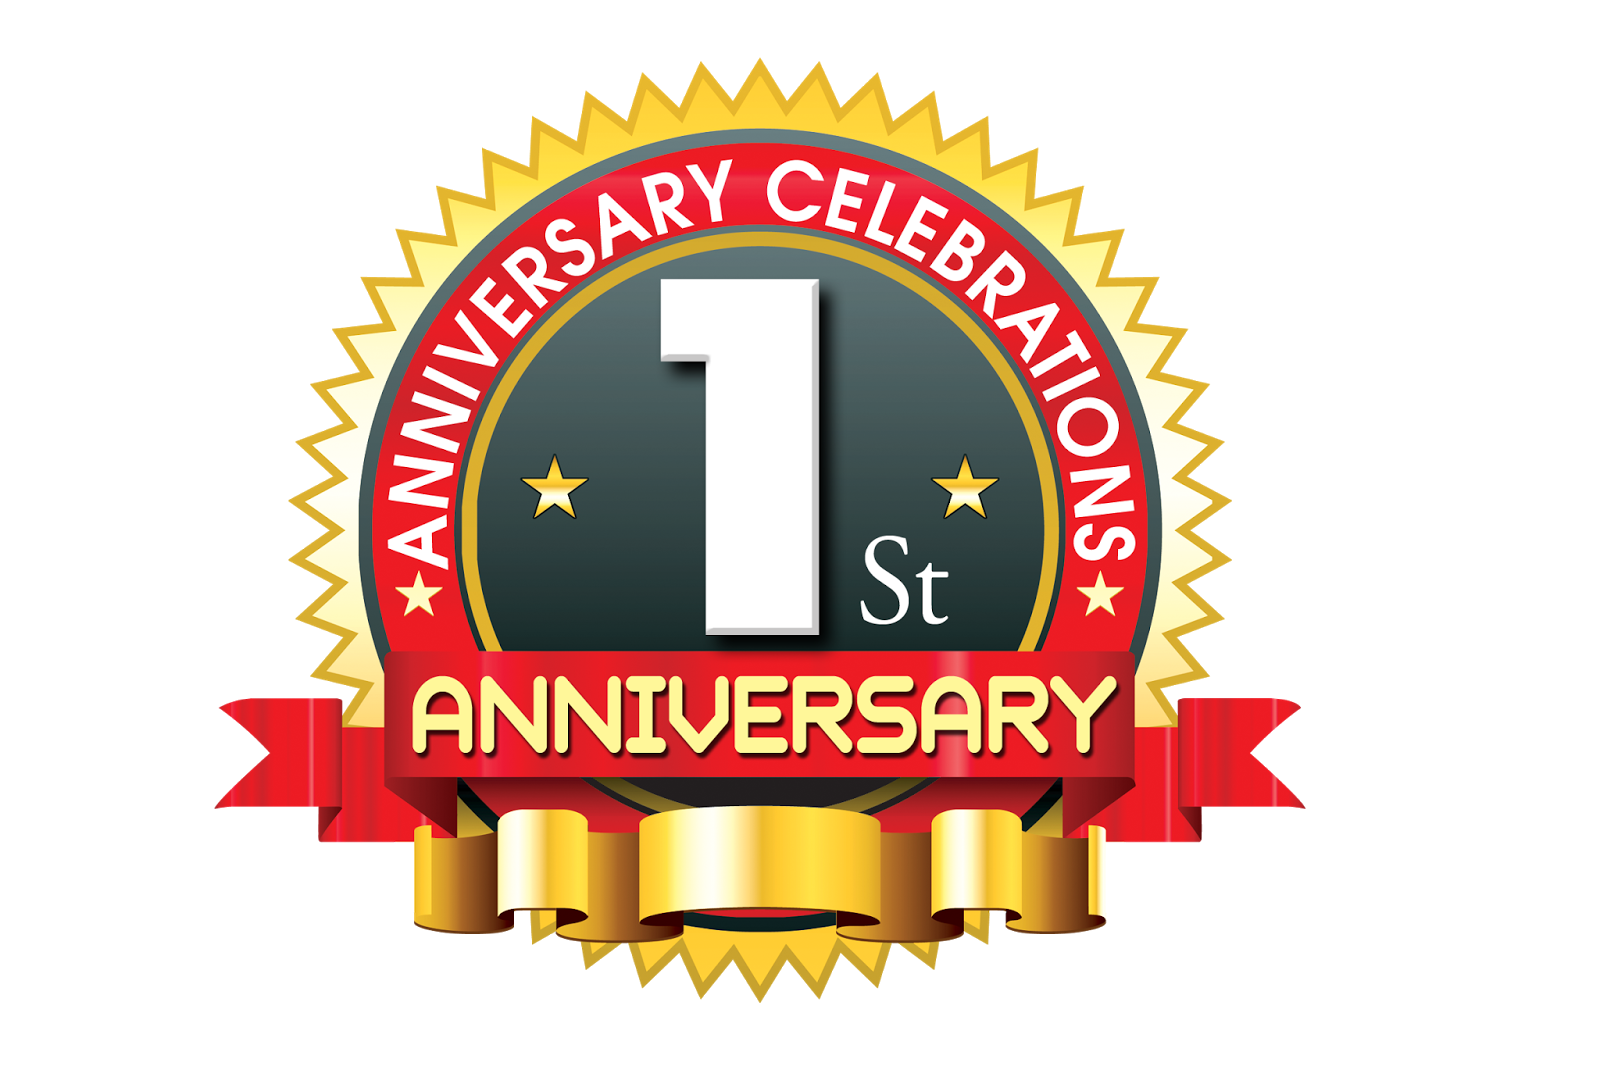 St anniversary logo with red ribbon naveengfx